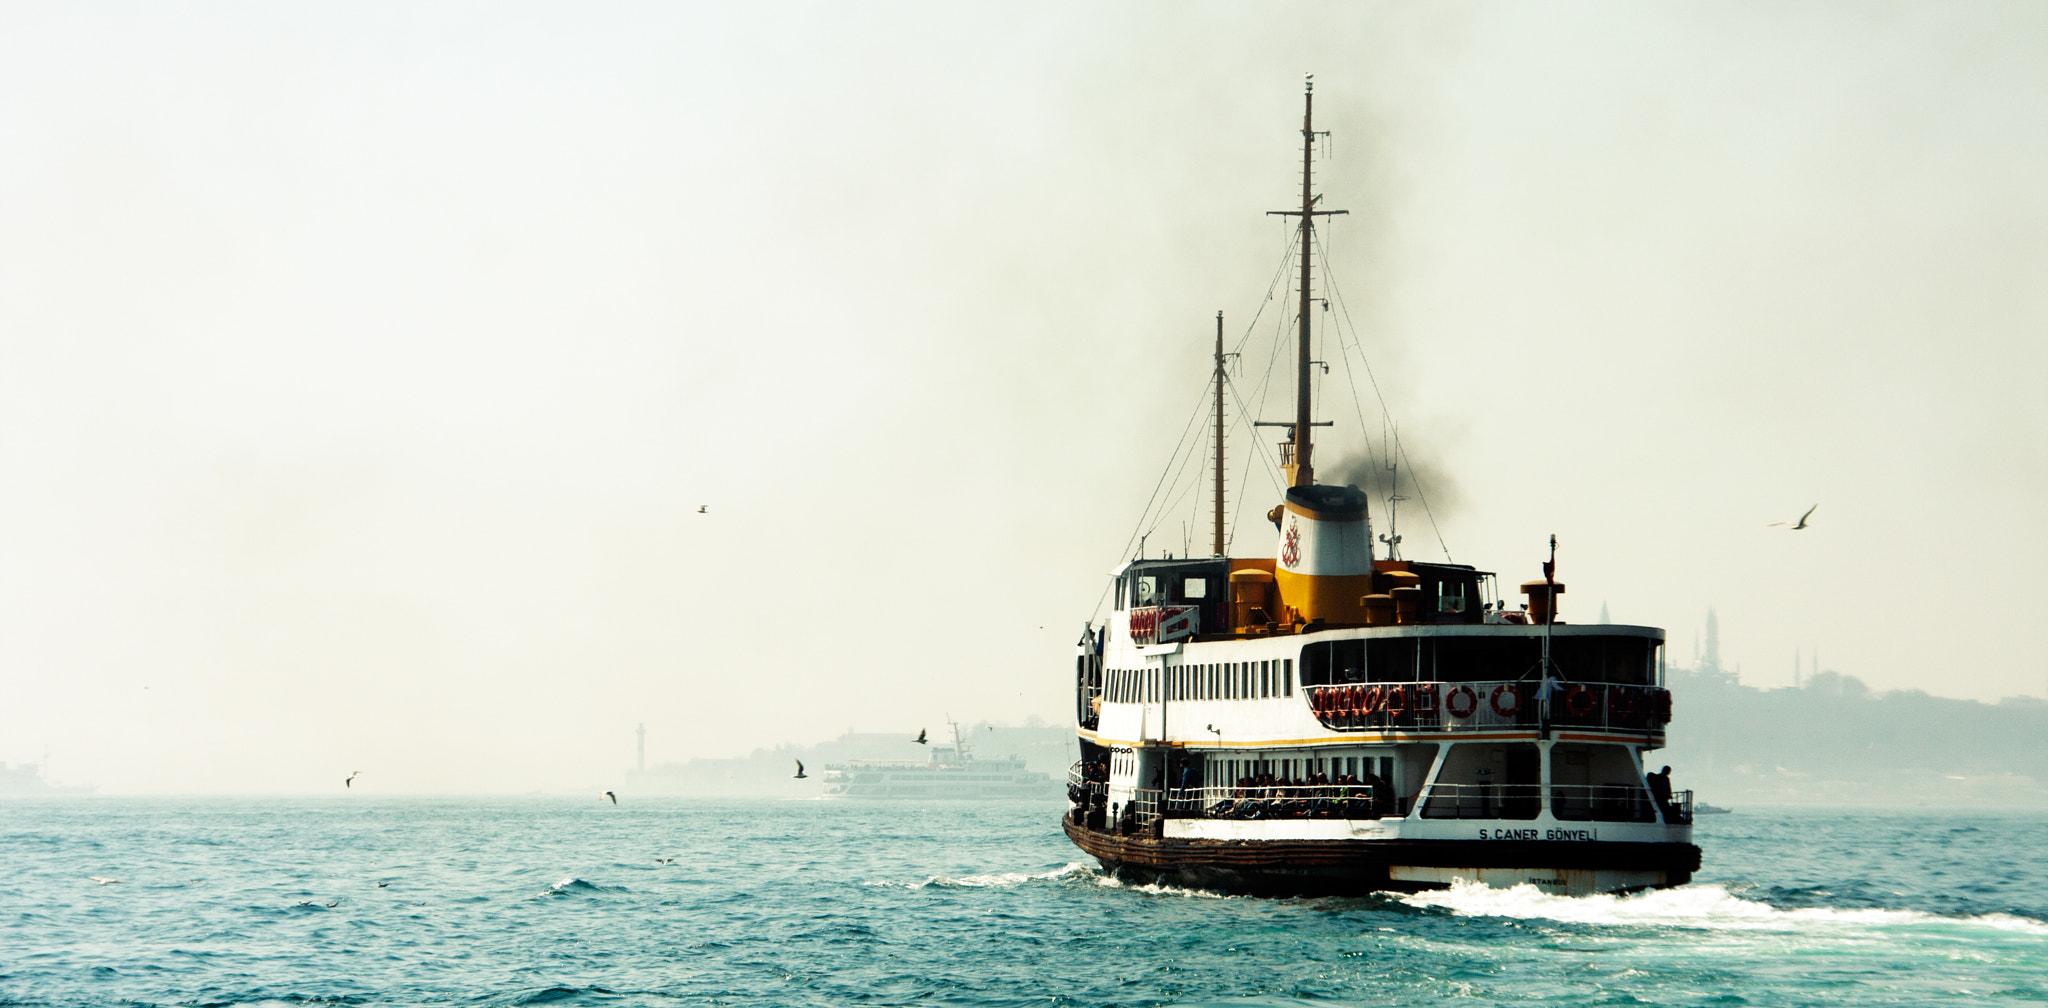 Photograph Transporting to Freedom by I. Volkan Gulum on 500px